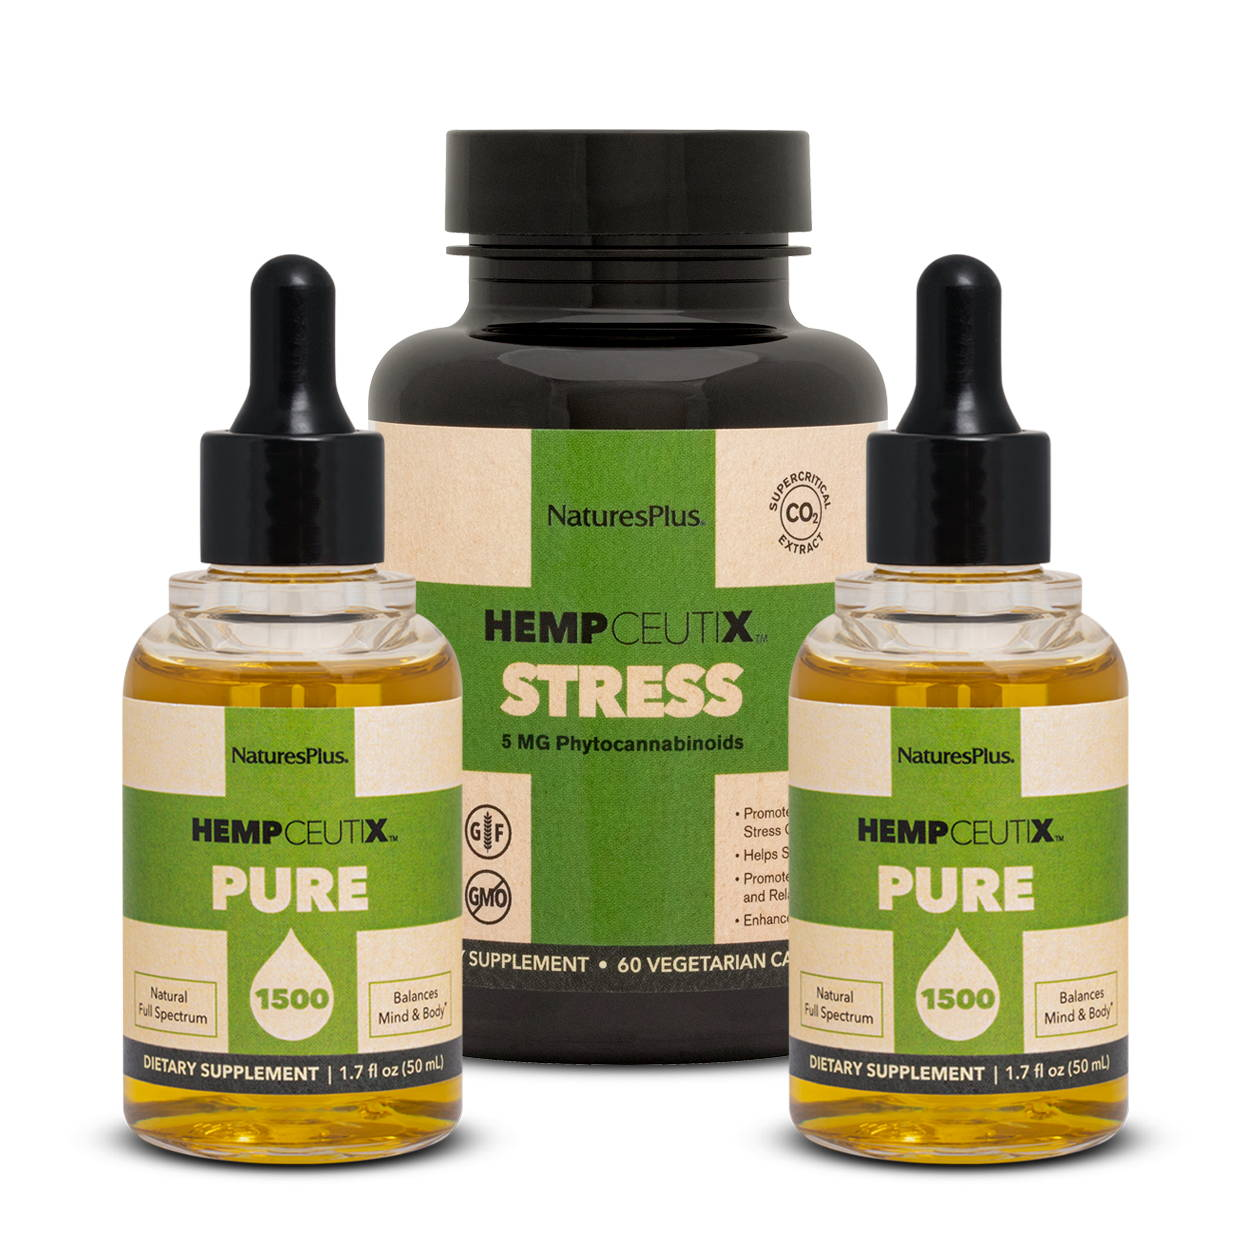 Stress stack image containing 2 bottles of Hempceutix Pure1500 and 1 bottle of Stress